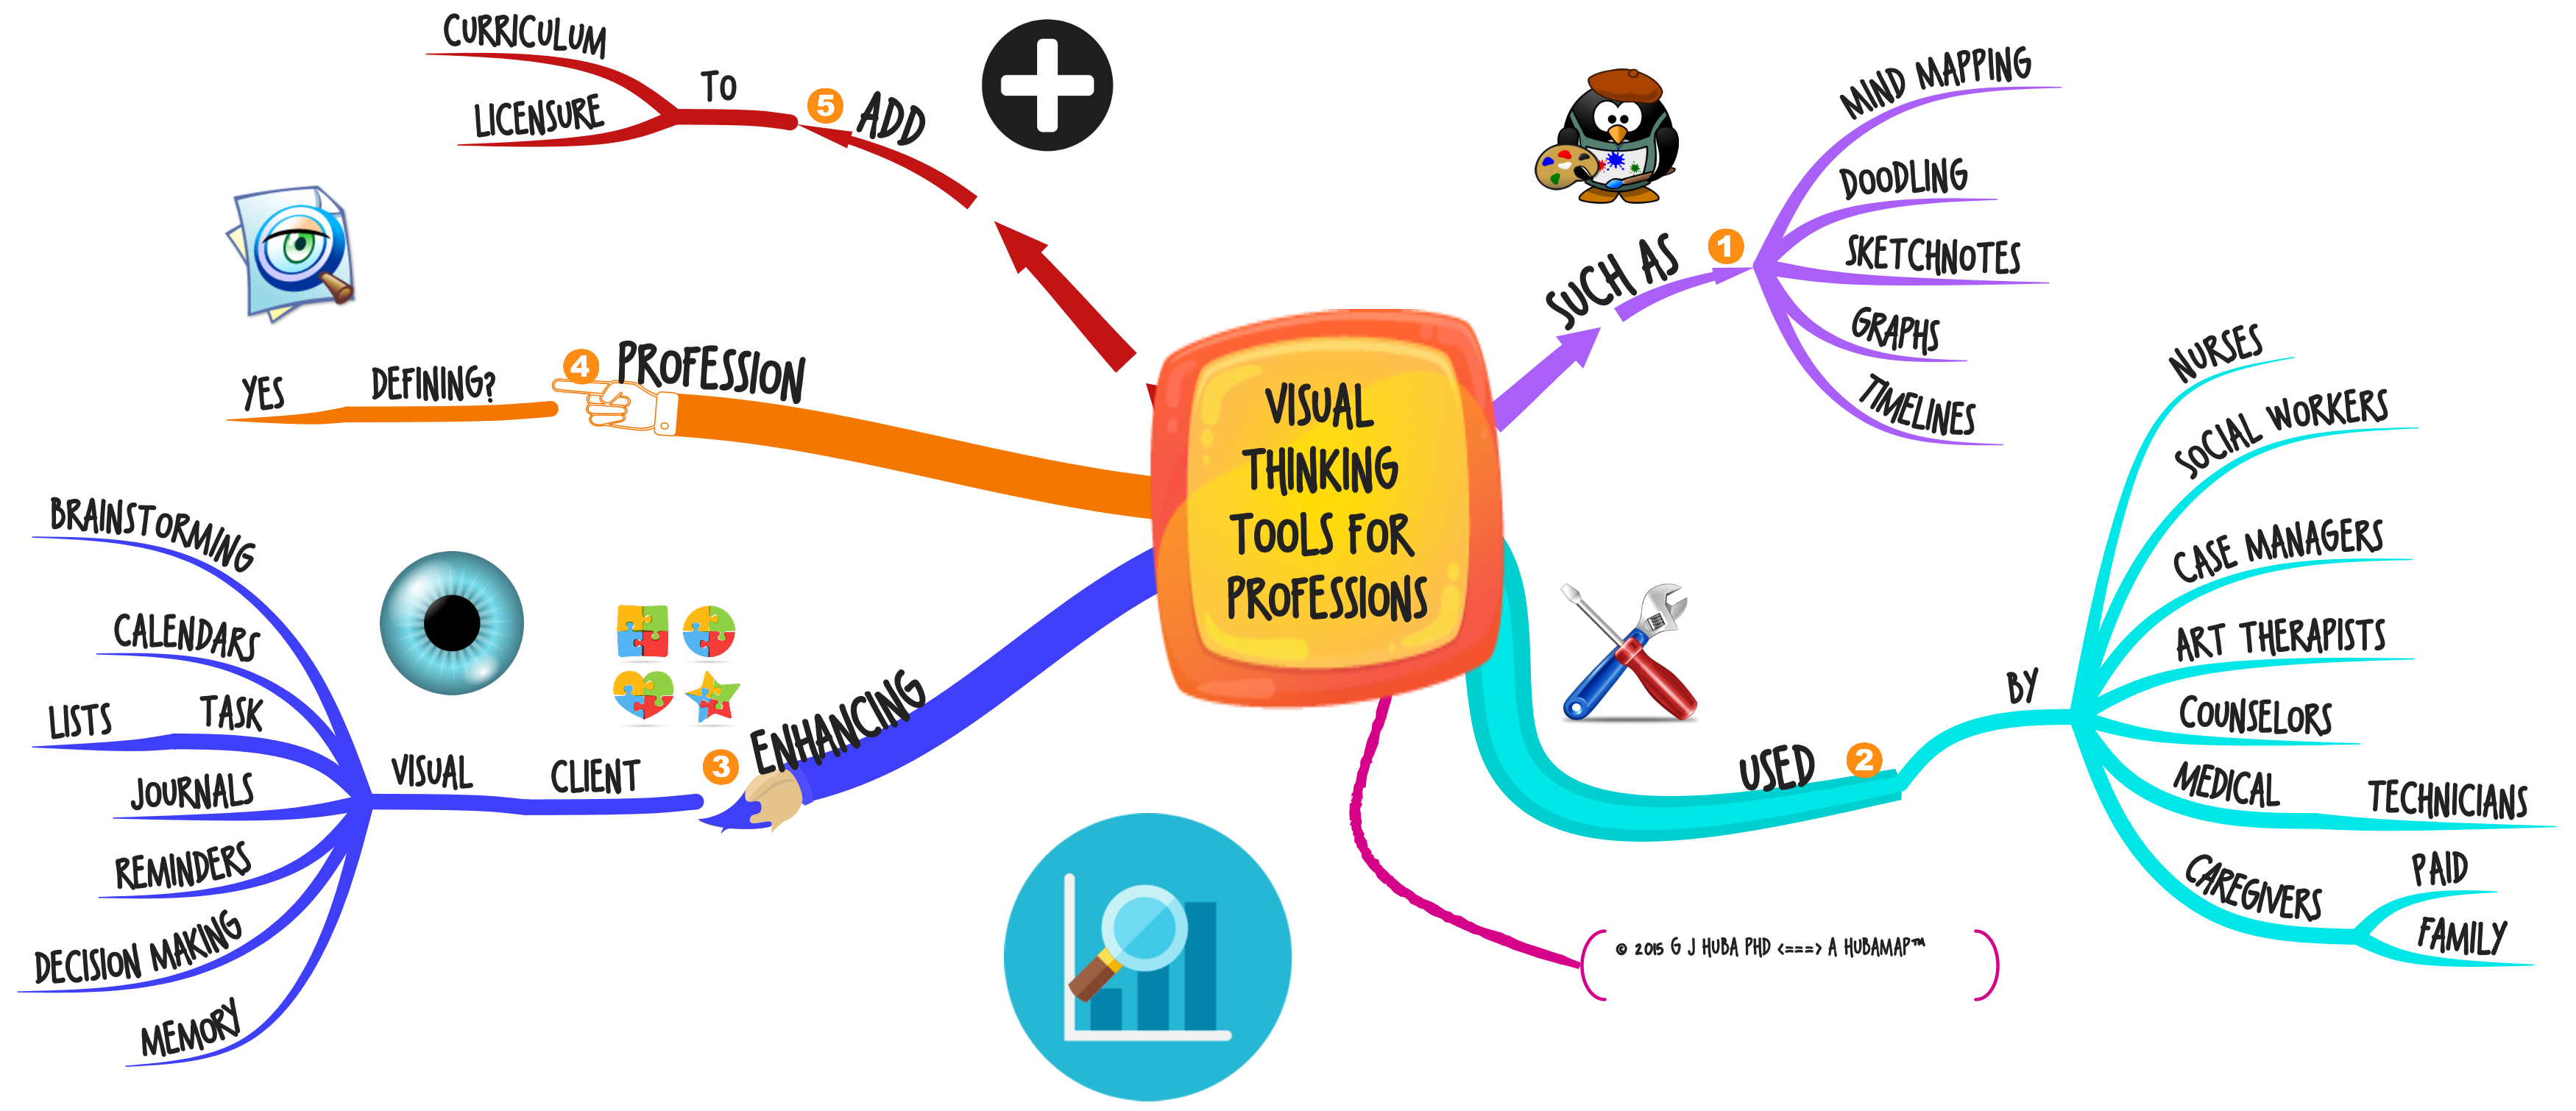 VISUAL  THINKING  TOOLS FOR  PROFESSIONS